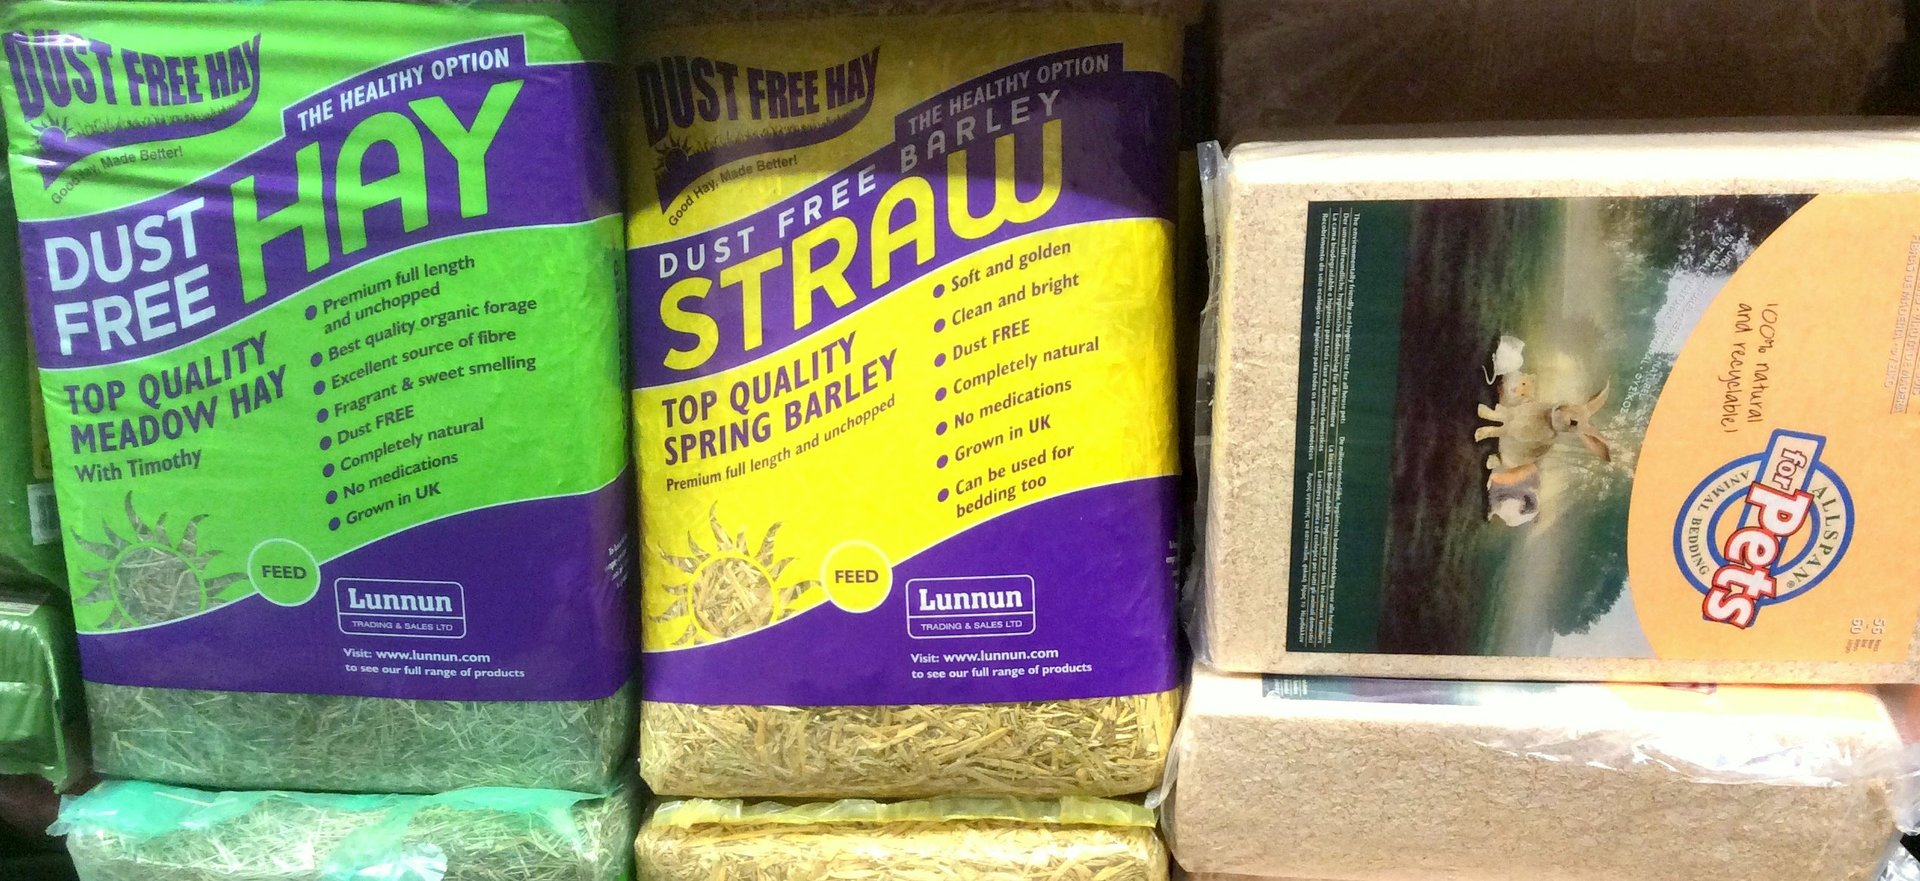 Compact bags of Hay, Straw & Shavings